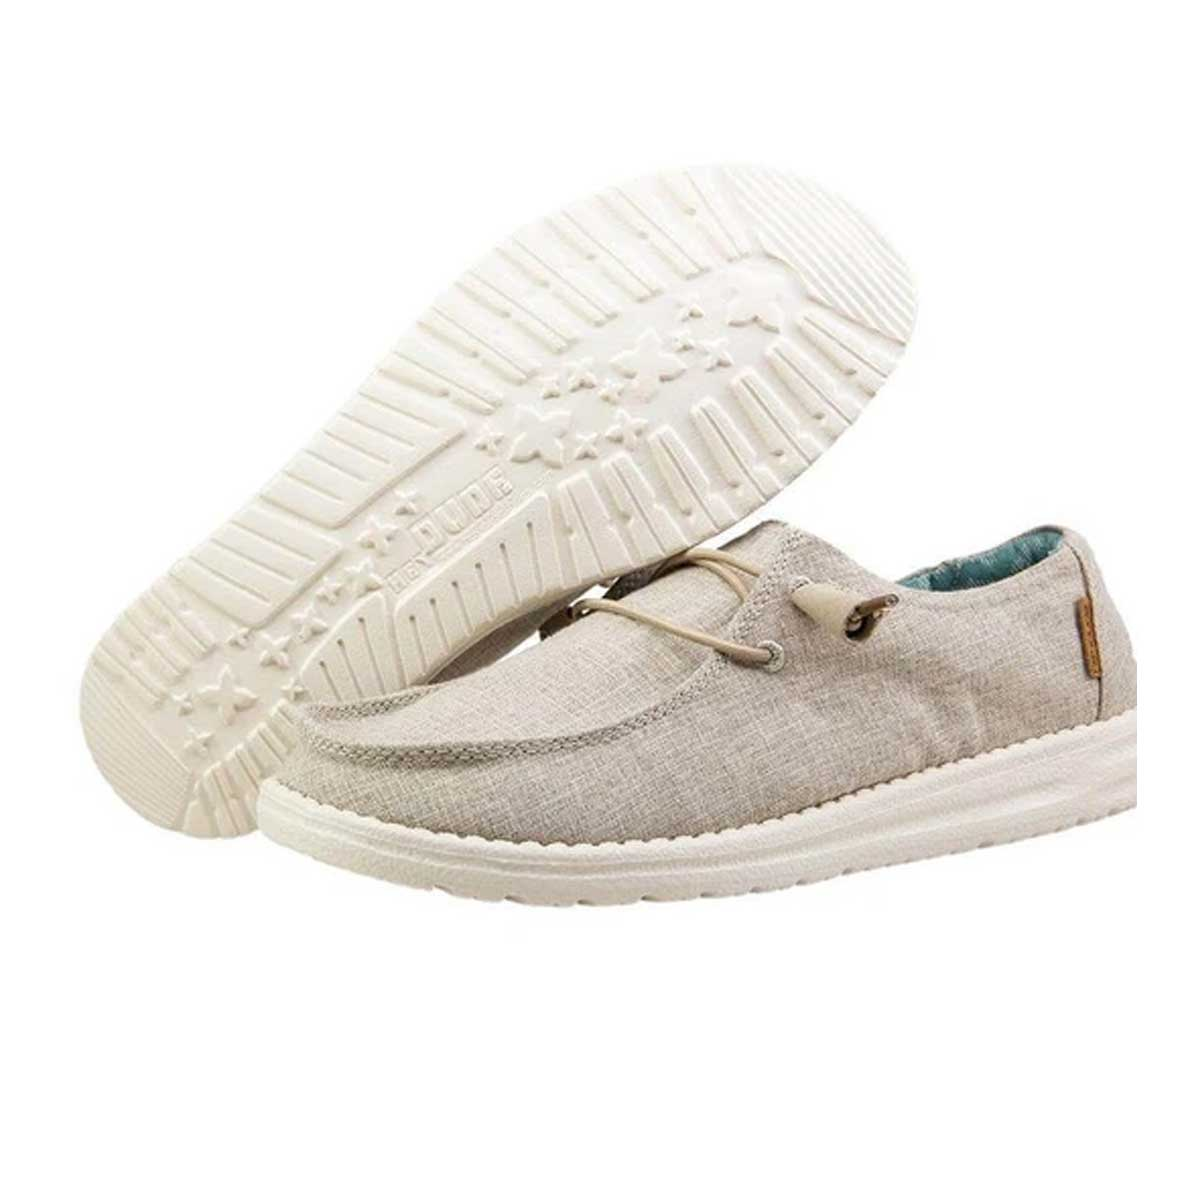 Hey Dude Women's Wendy Chambray Linen Comfort Shoes - Beige